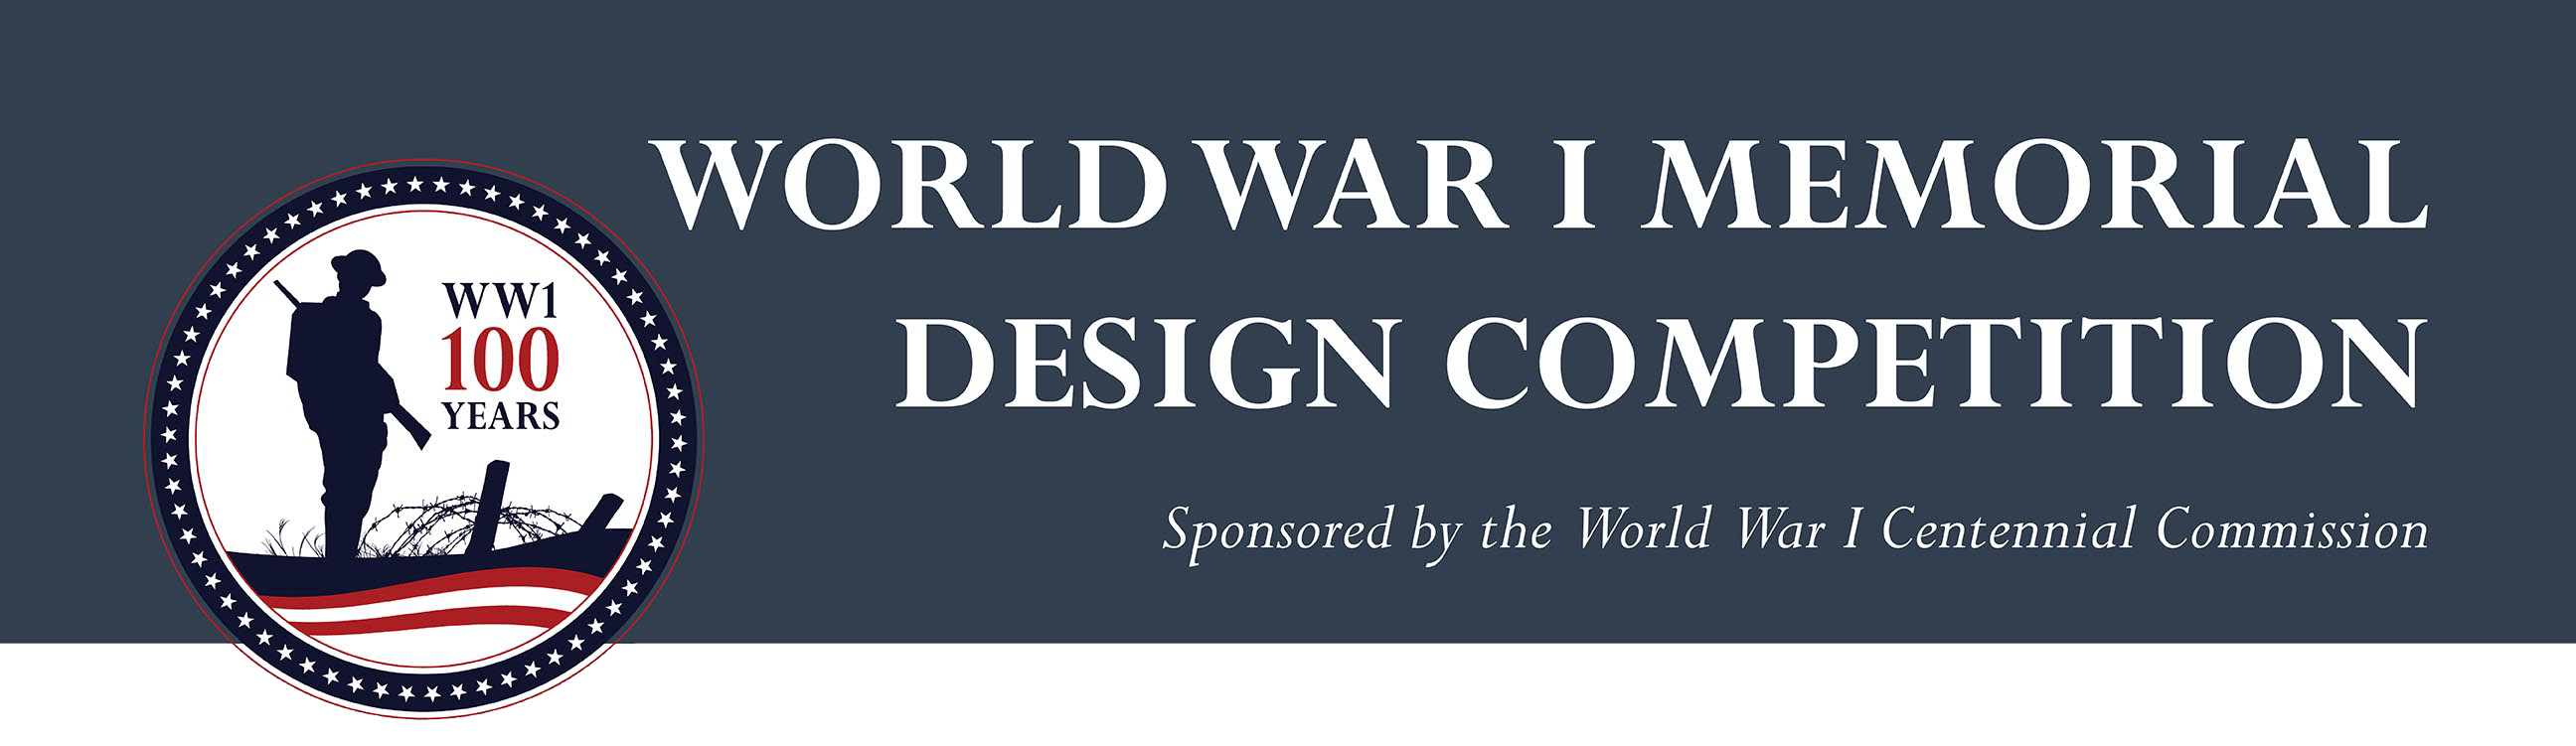 memorial design competition header